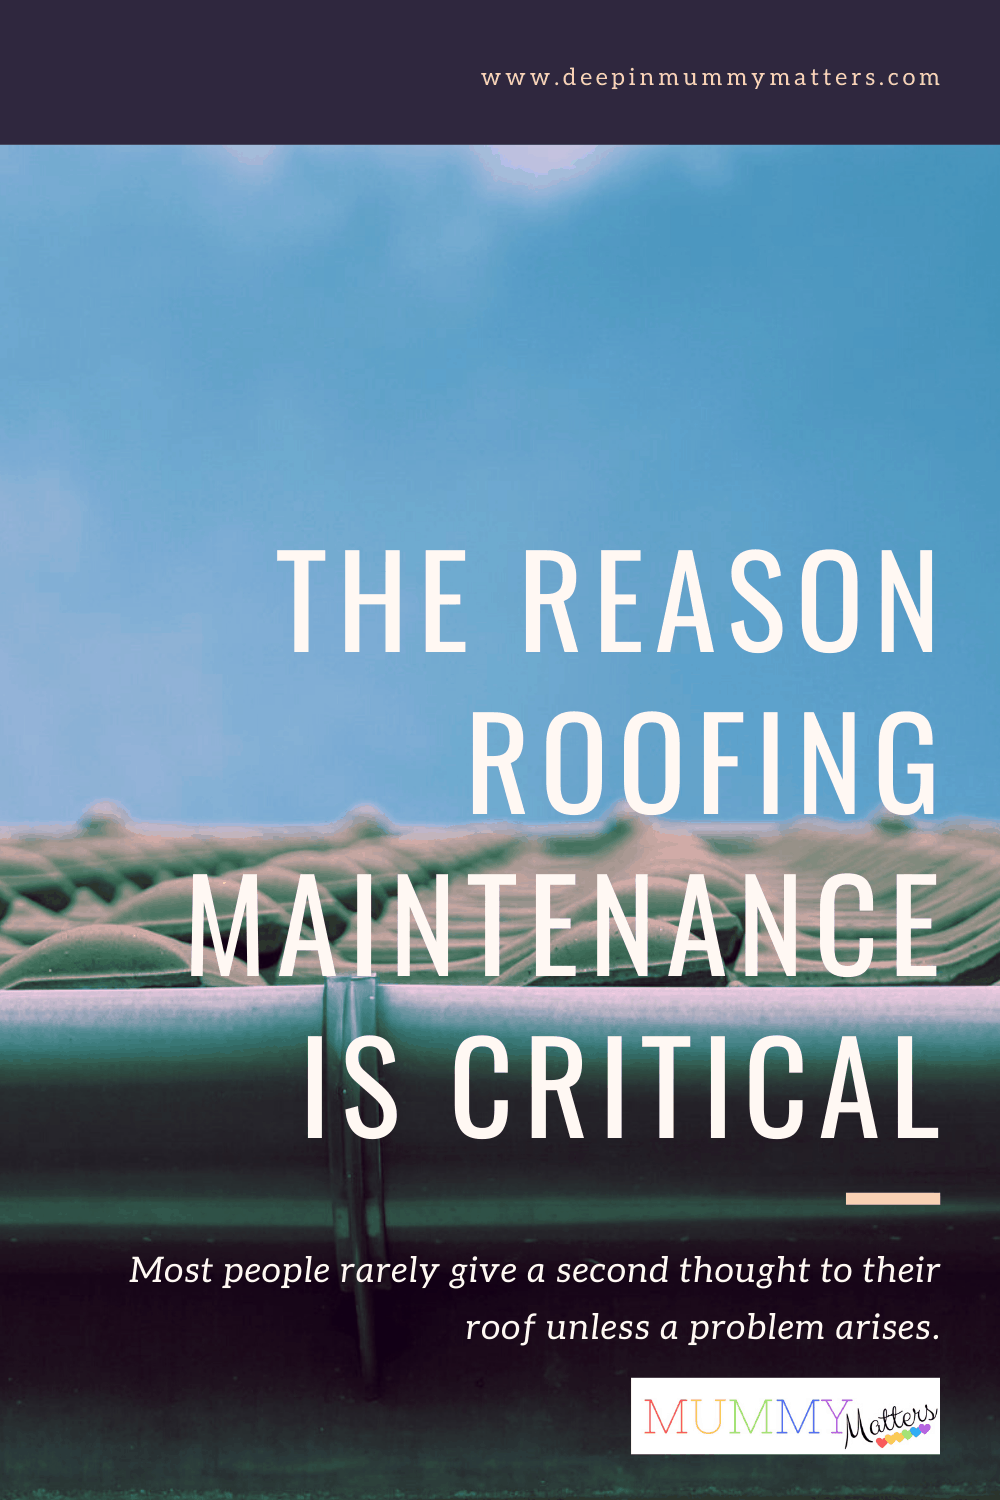 The expected life of a roof is 15-30 years. If you don't take care of it; you may have to replace it much sooner. Here is why roofing maintenance is critical.